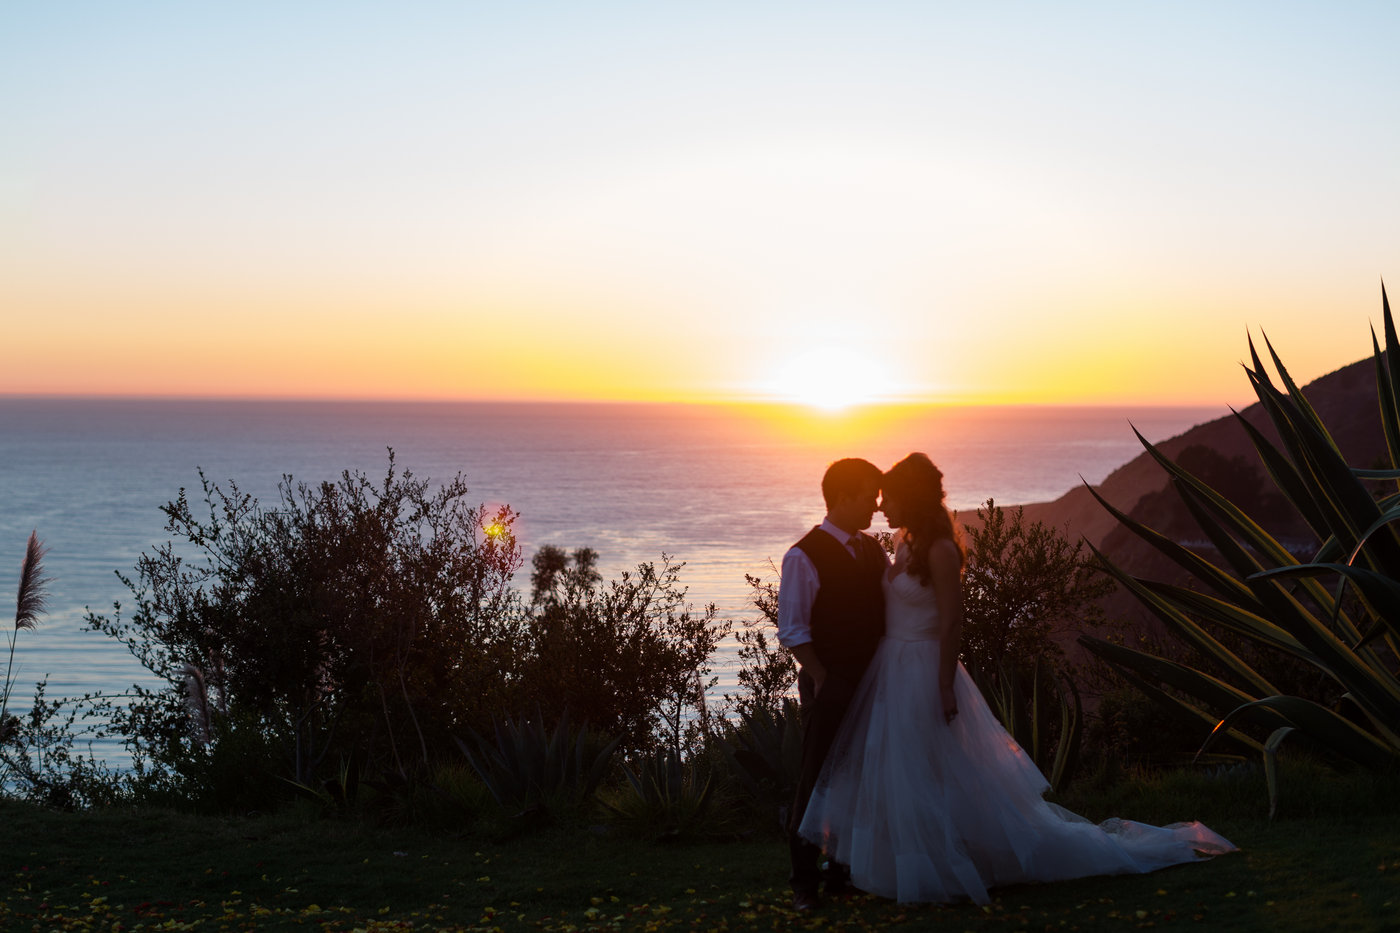 point-16-big-sur-california-sunset-wedding-photographer.jpg